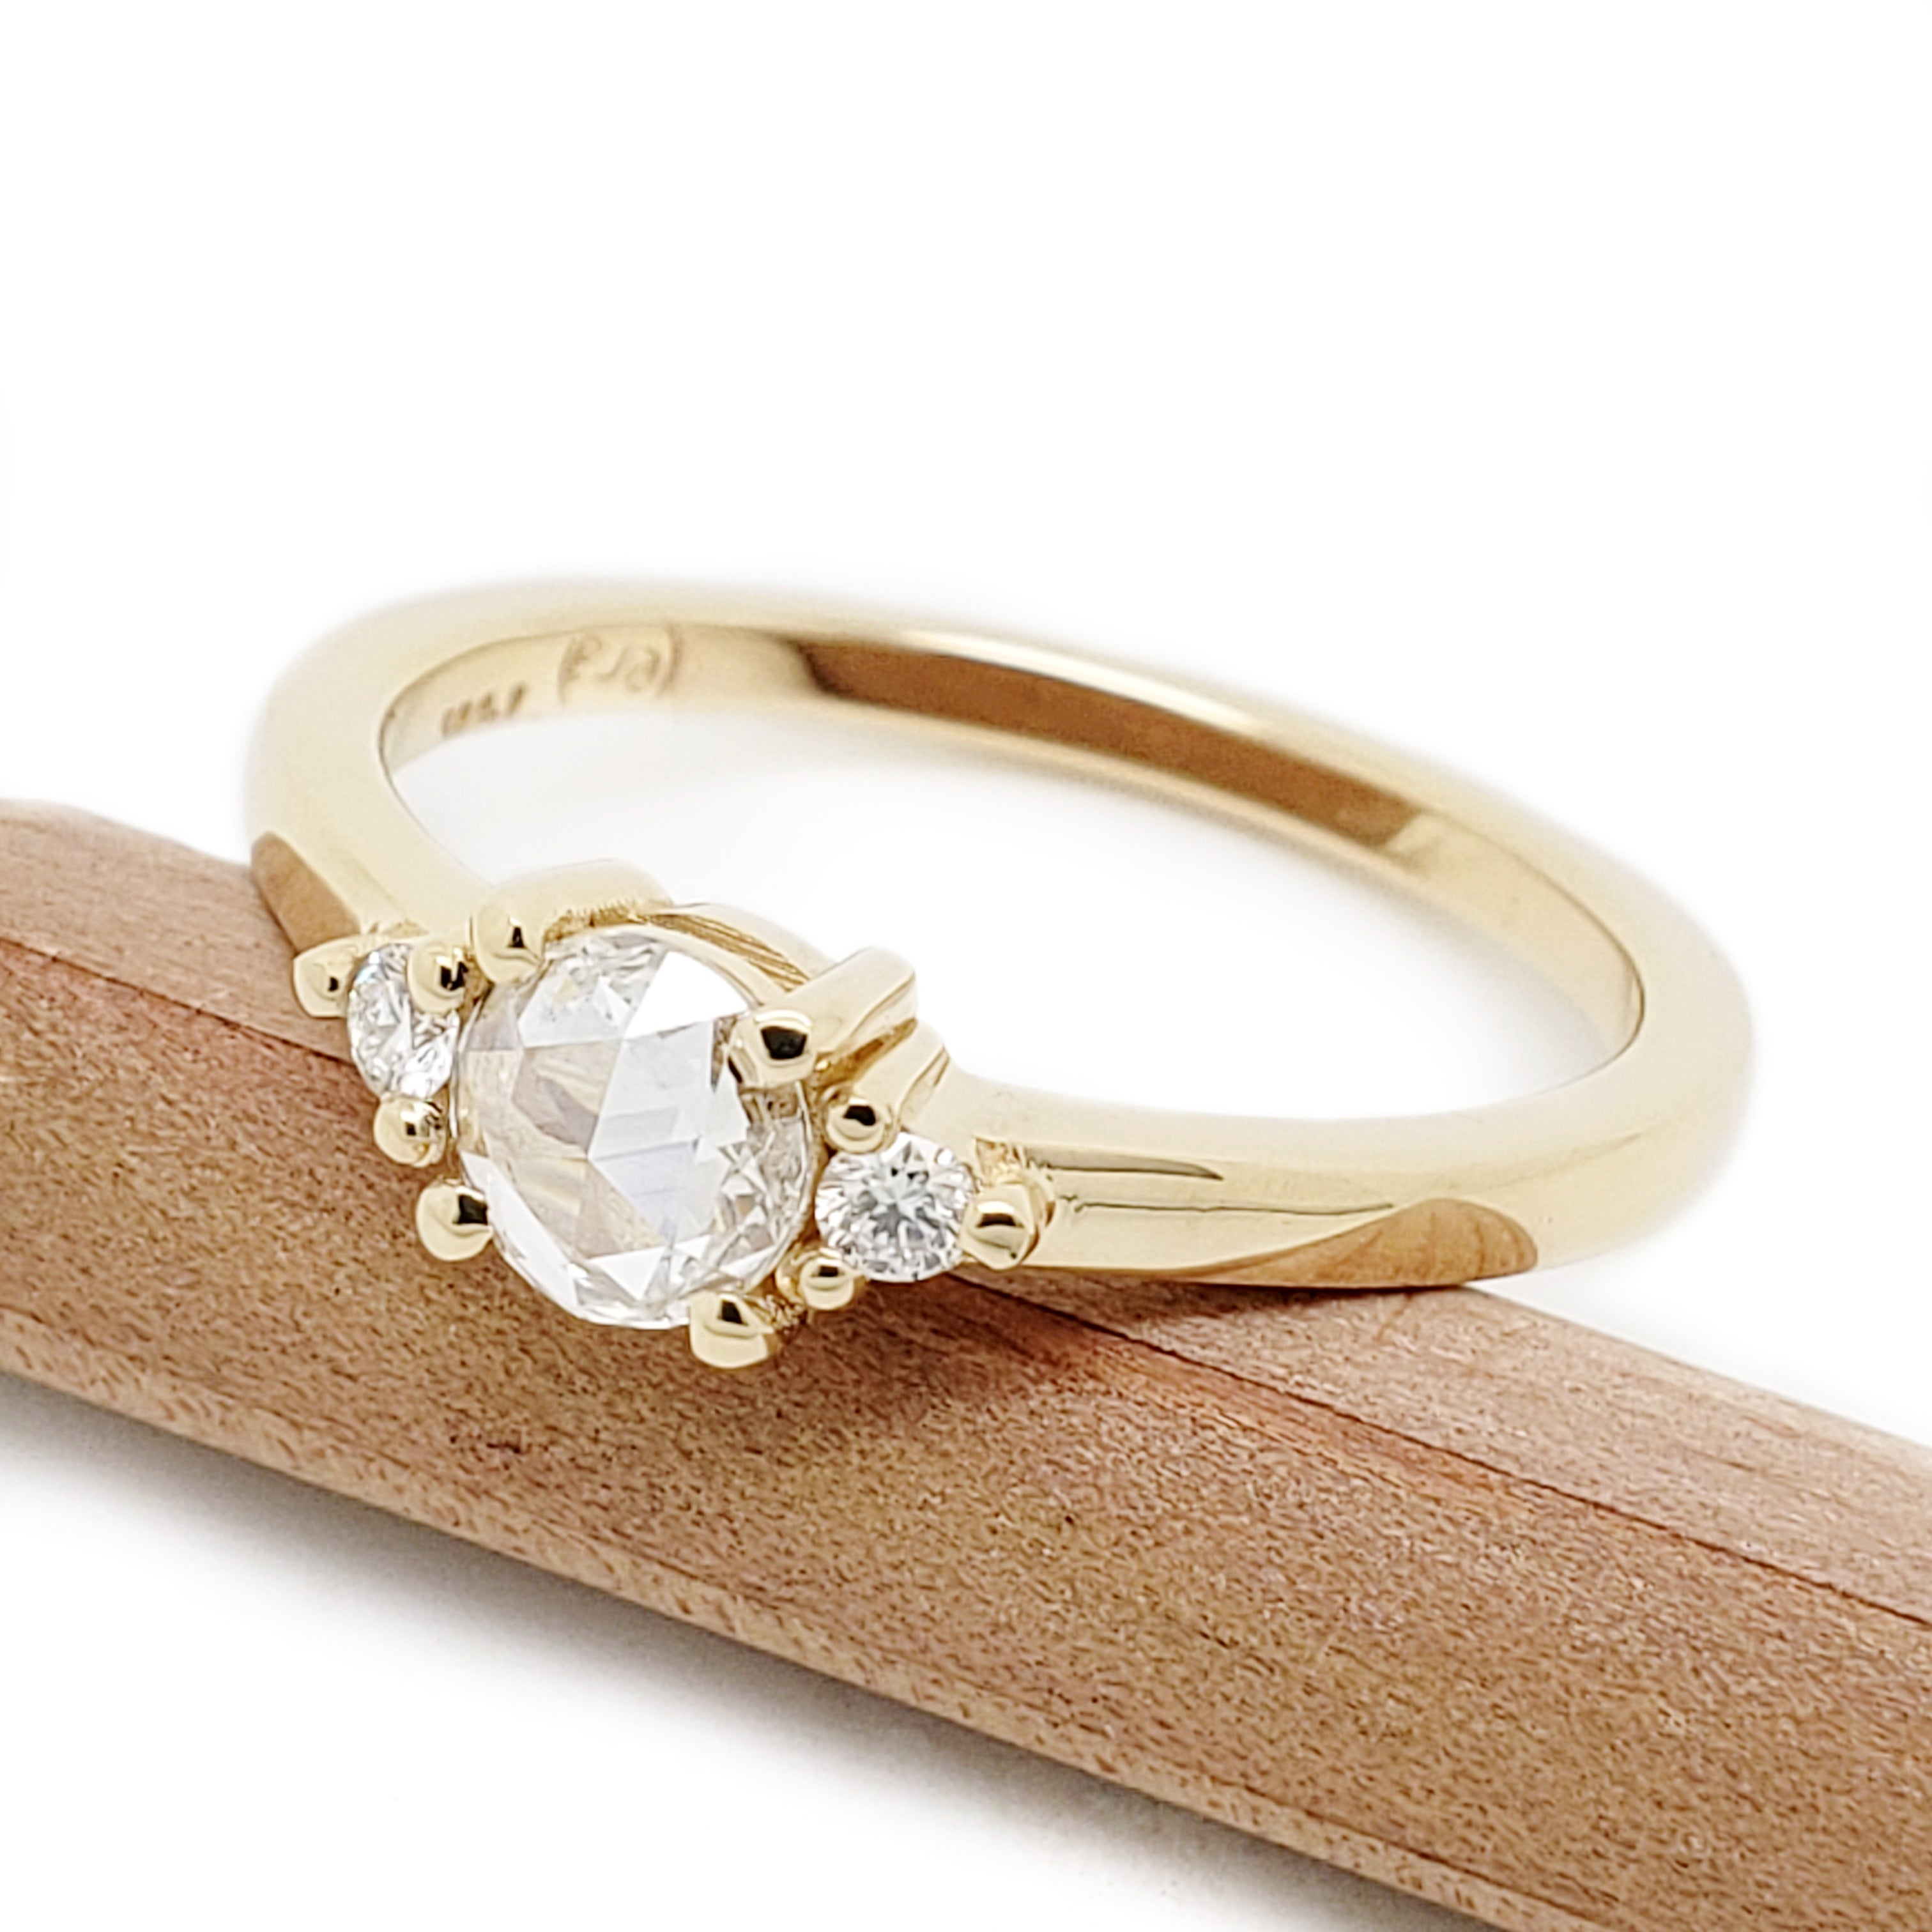 14kt yellow gold rose cut diamond moraine canadian diamonds 3 stone engagement ring era design vancouver